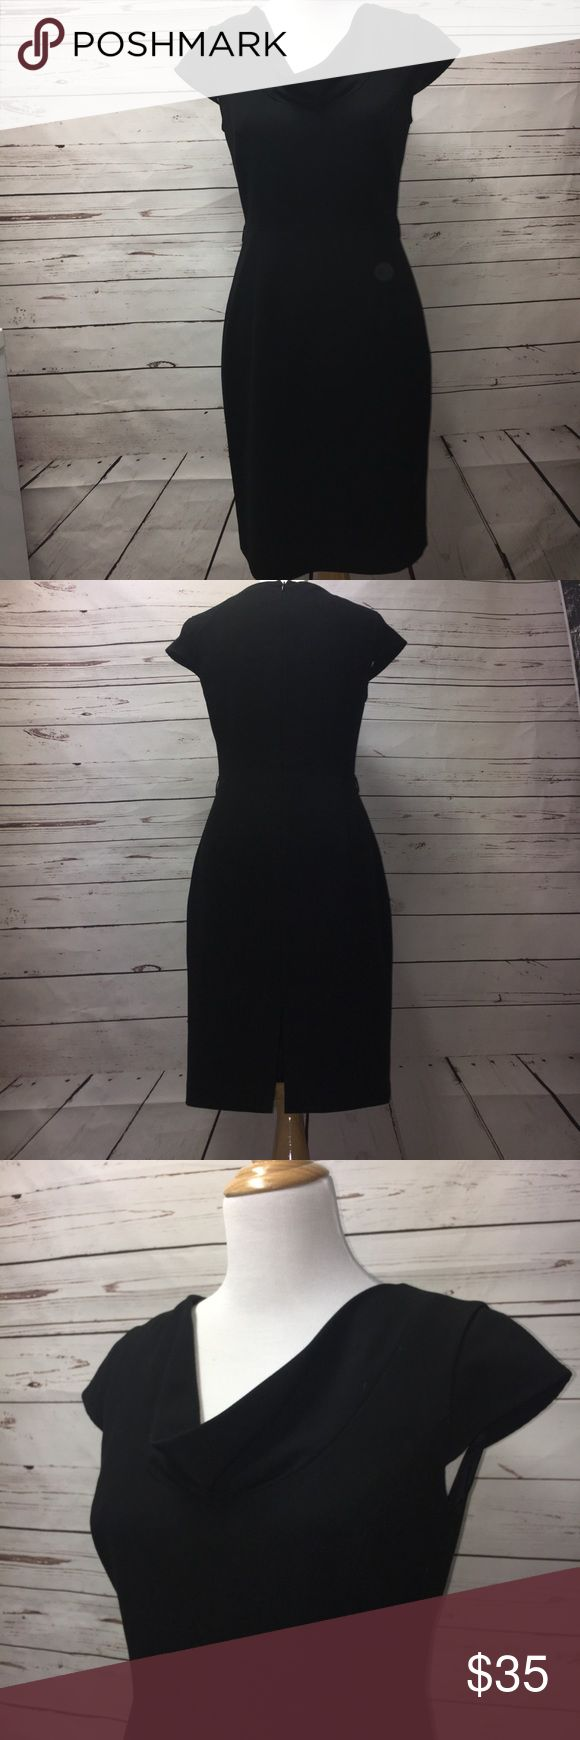 Calvin Klein Black Business Dress This dress could be paired with your favorite thin belt and Blazer for a business look or dressed up with an iridescent belt and shawl for an evening look. GUC! Drycleaned and lined, this dress is ready to be worn by you! Has string belt loops that could be removed if you chose not to wear it with a belt. Calvin Klein Dresses Midi